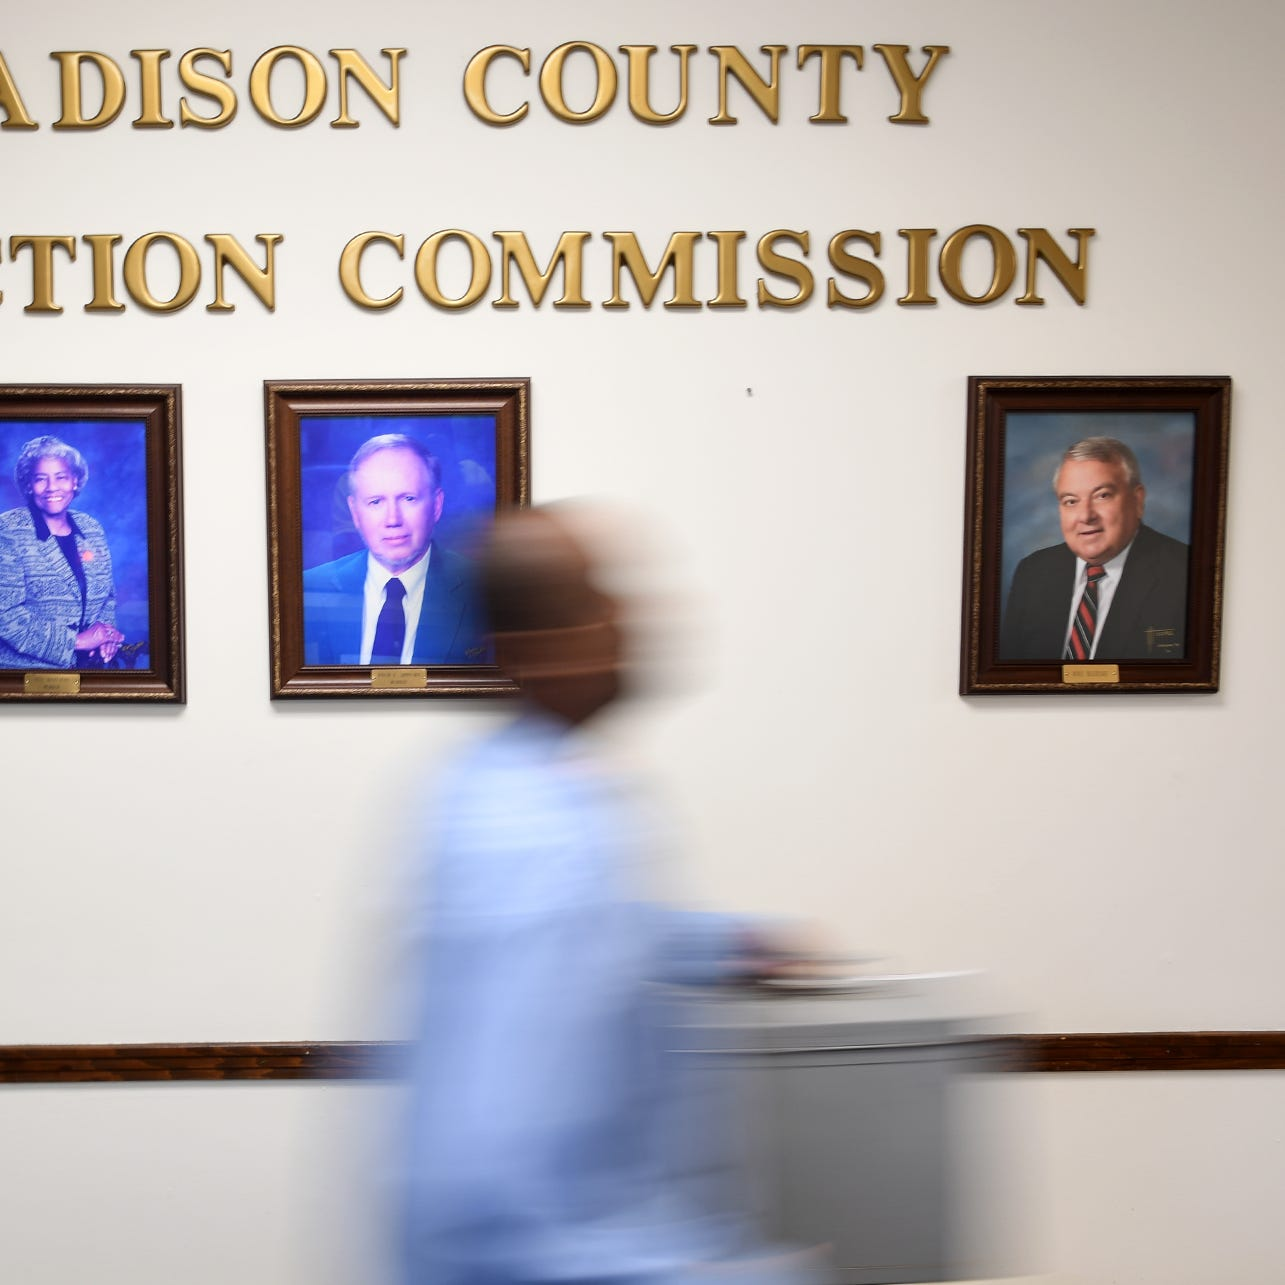 Jackson city election results: Final results, Jerry Woods and Scott Conger will face off in the runoff for mayor